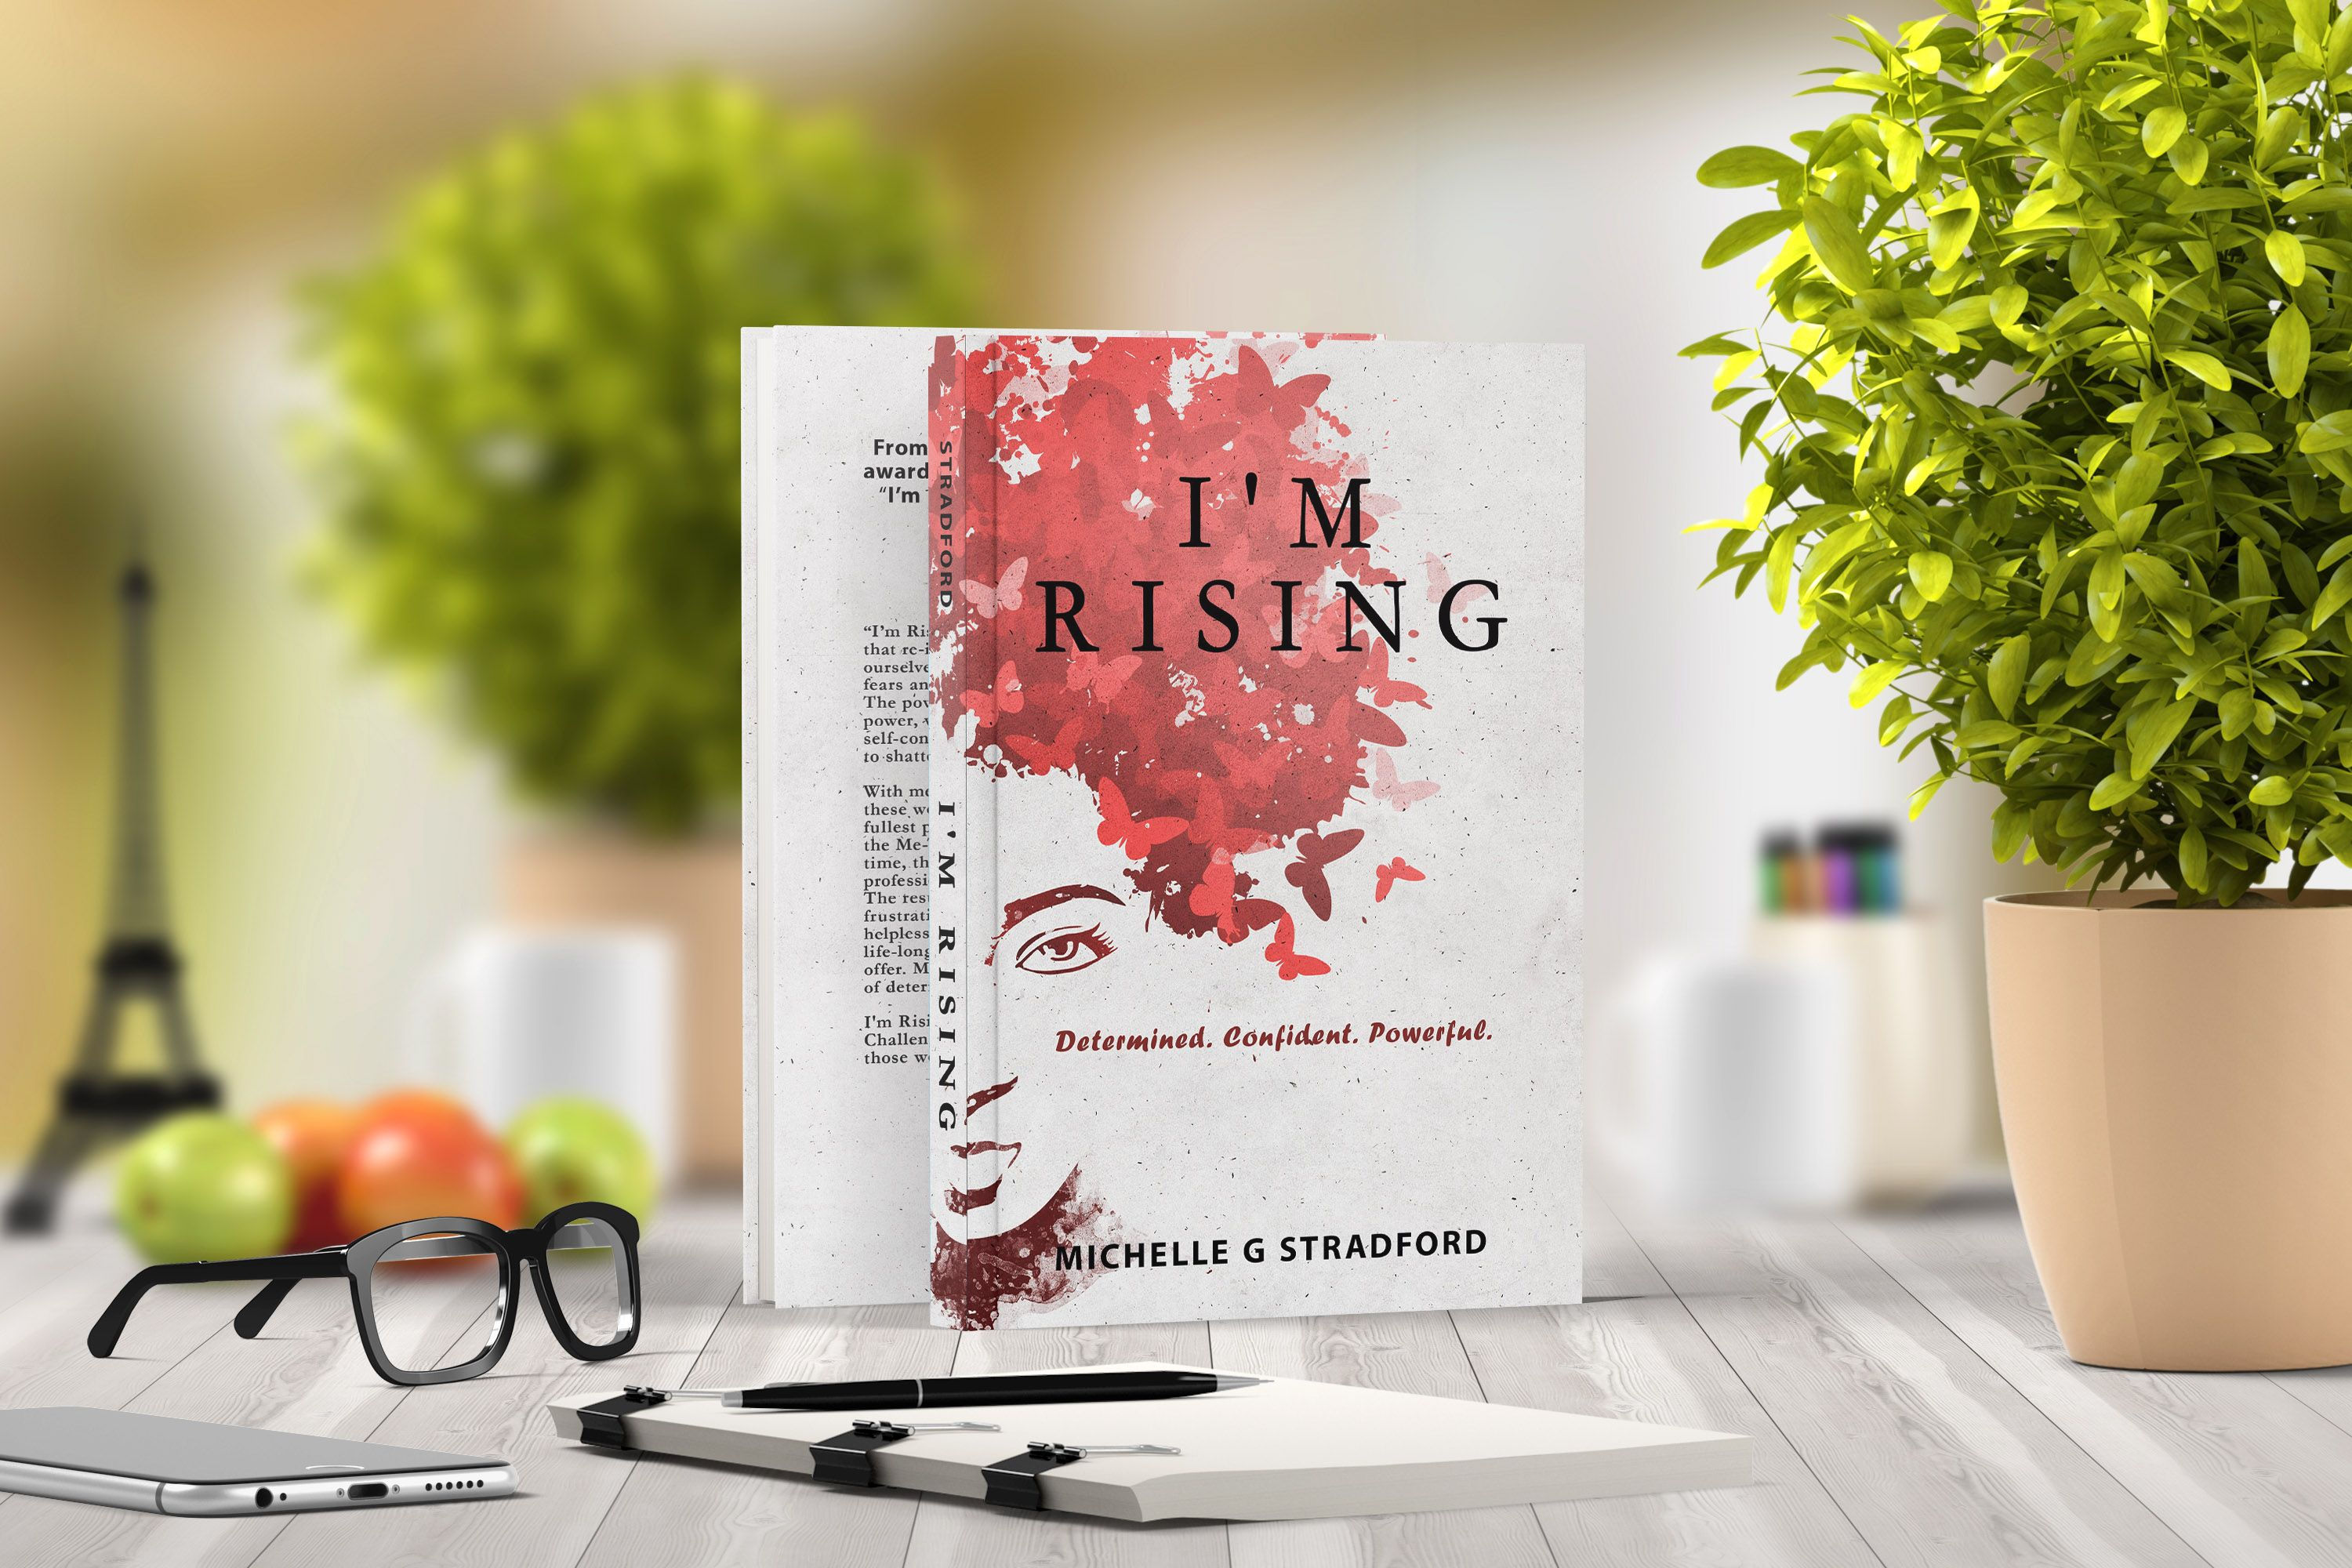 Im rising offers selflove poems for women and men urging